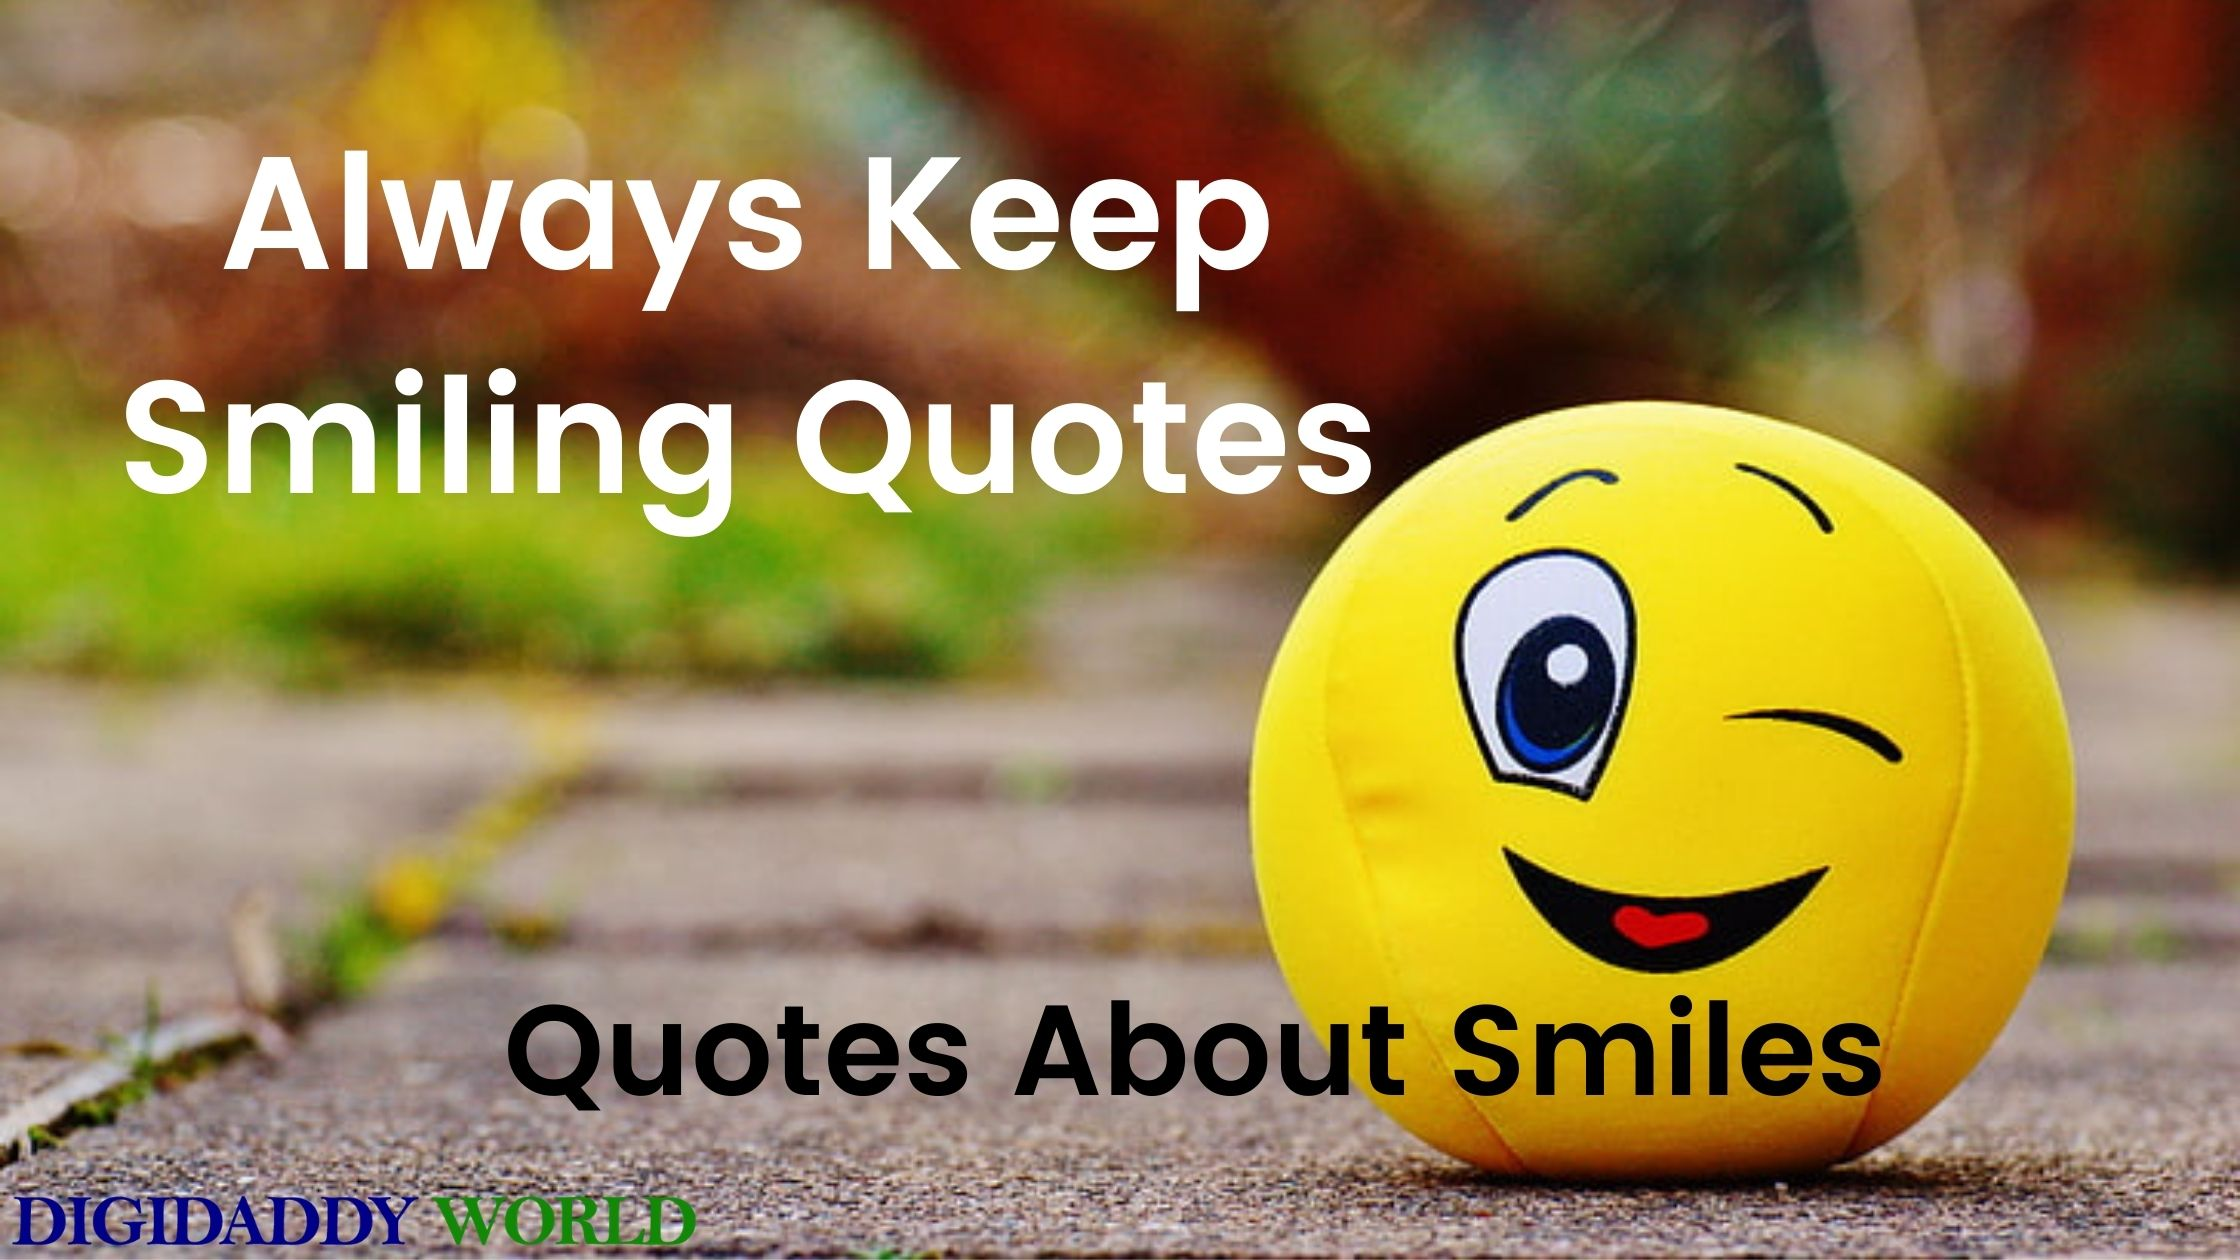 Always Keep Smiling Quotes - Quotes About Smiles